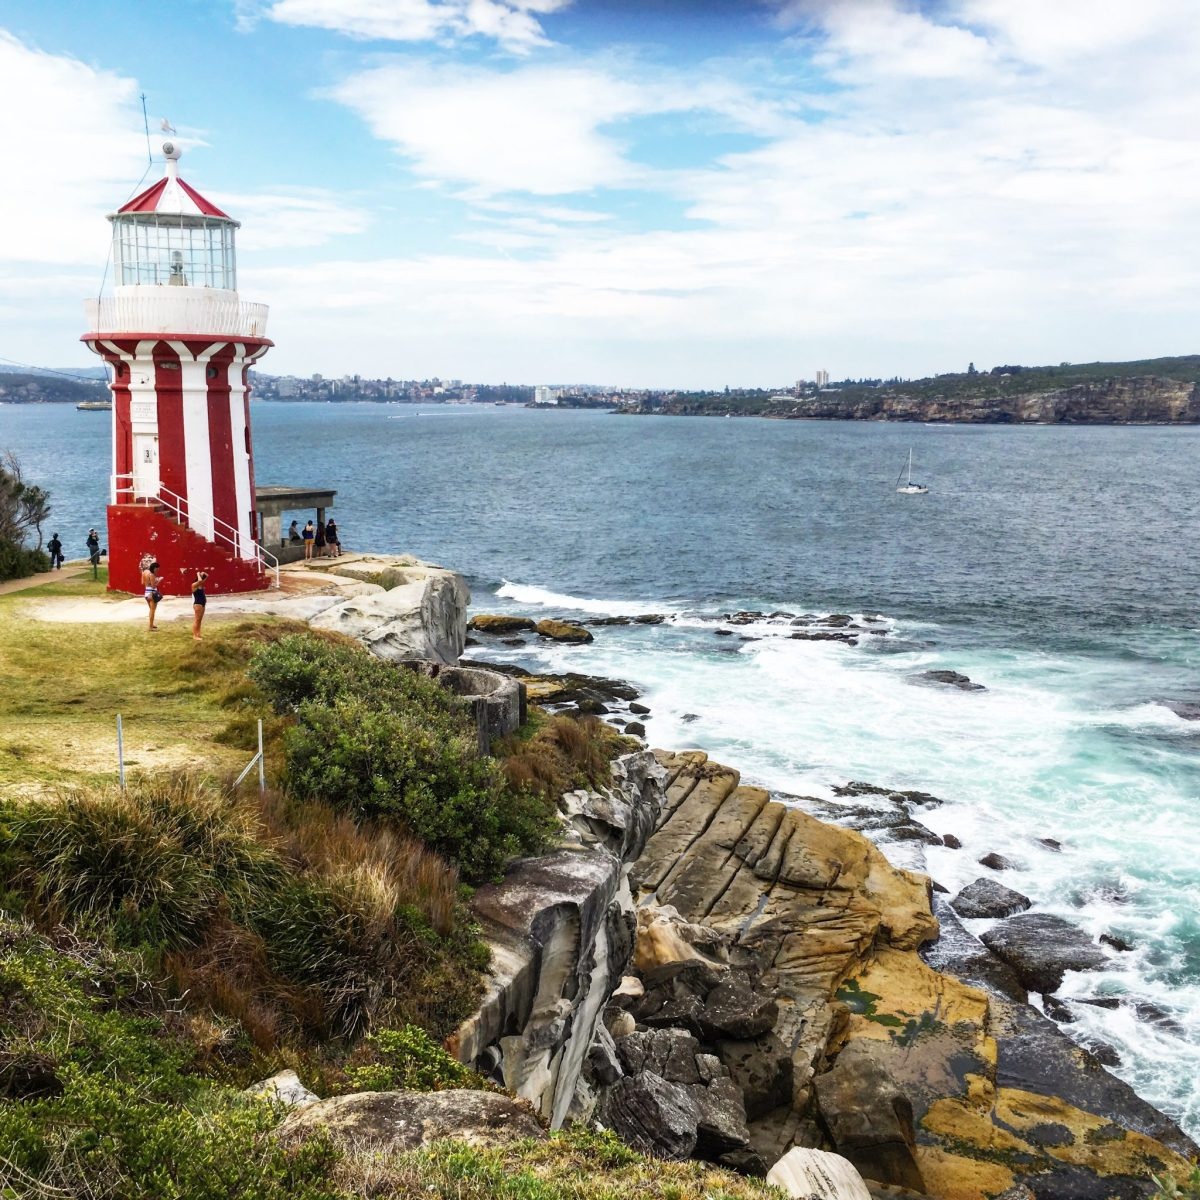 Rose Bay to Watsons Bay Walk